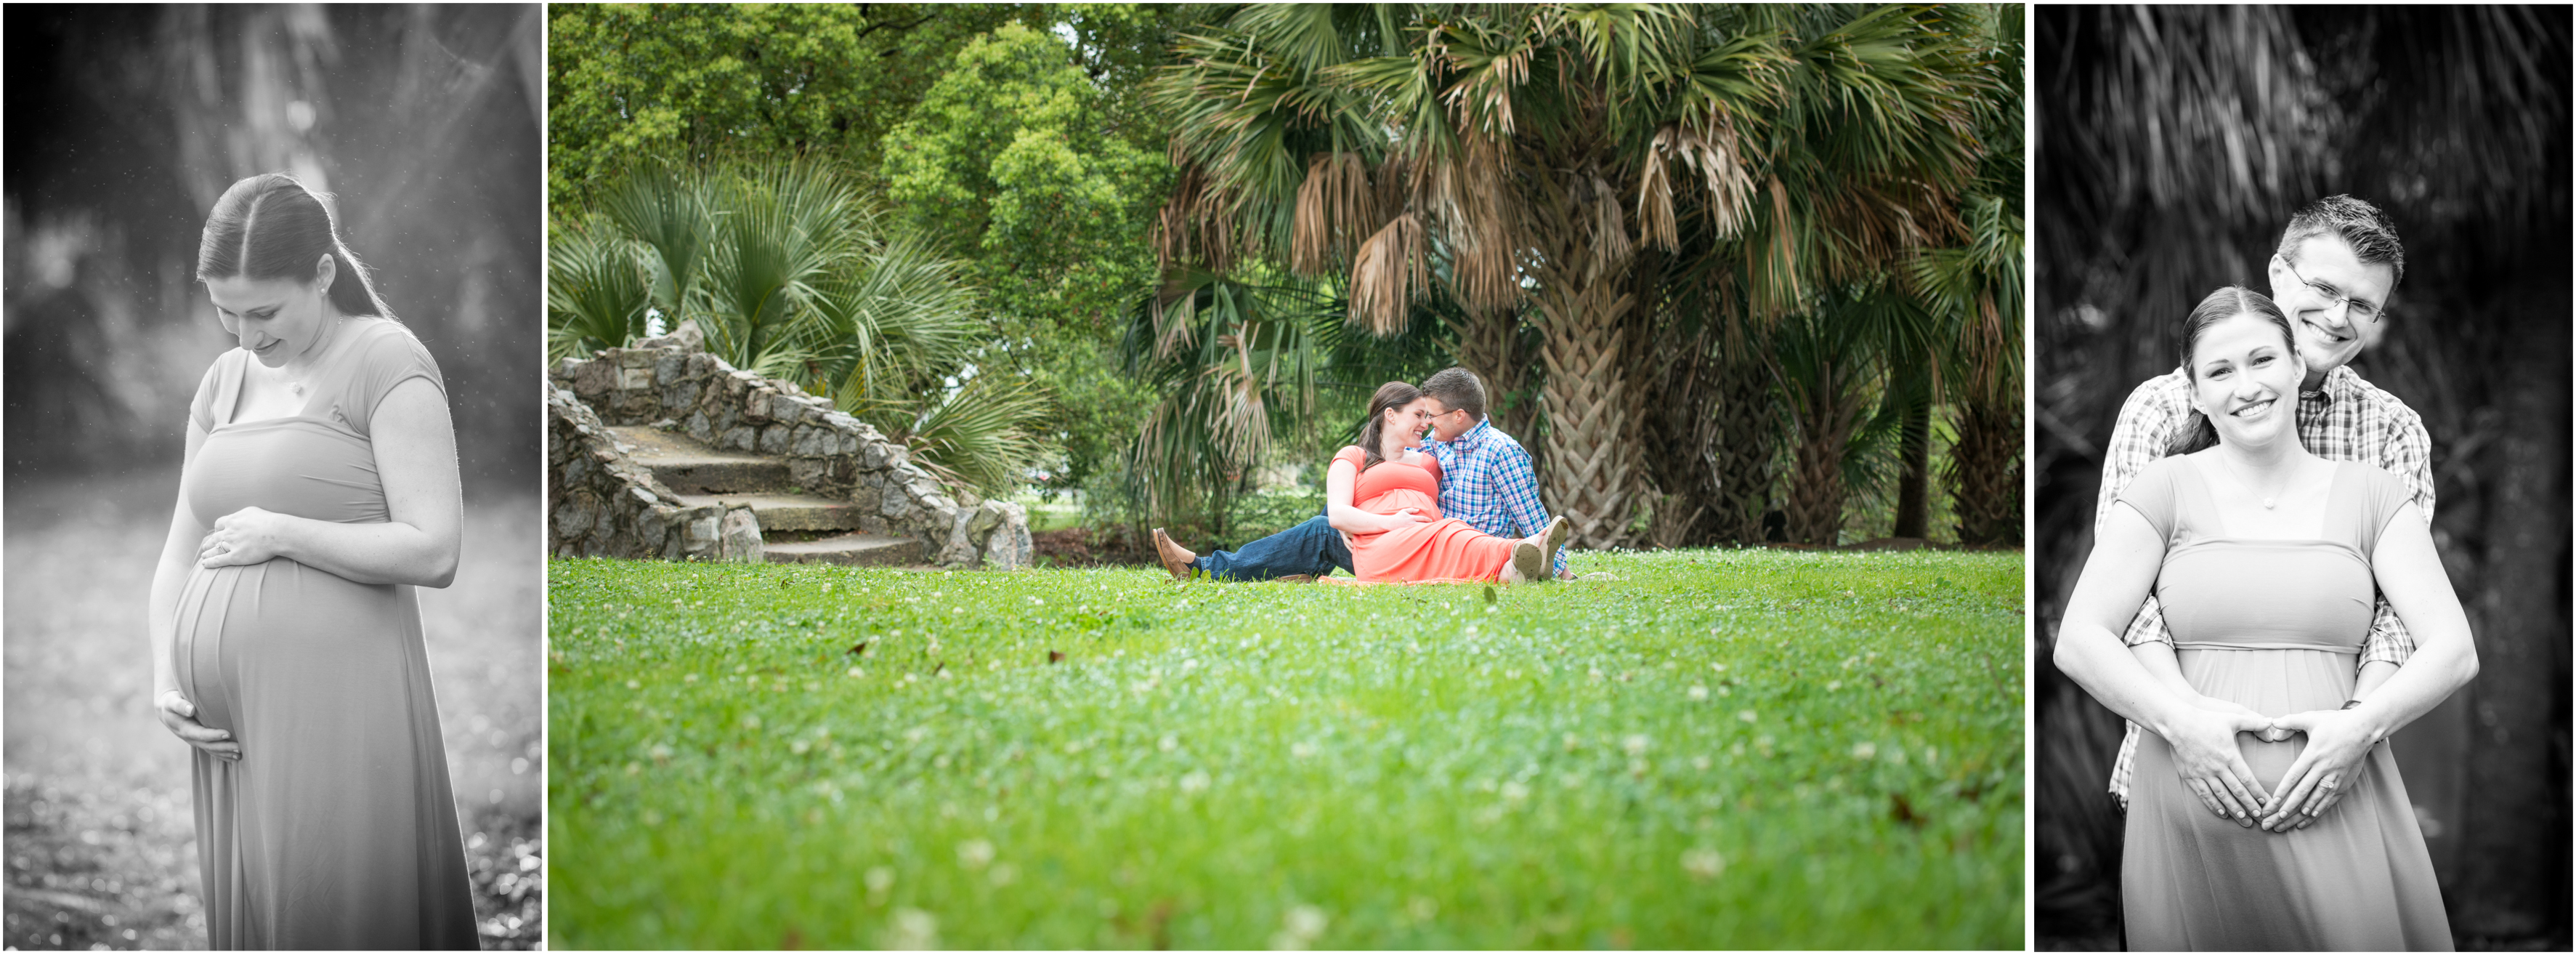 Blog and Most Recent | J Mott Photography~Louisiana-Based, Available